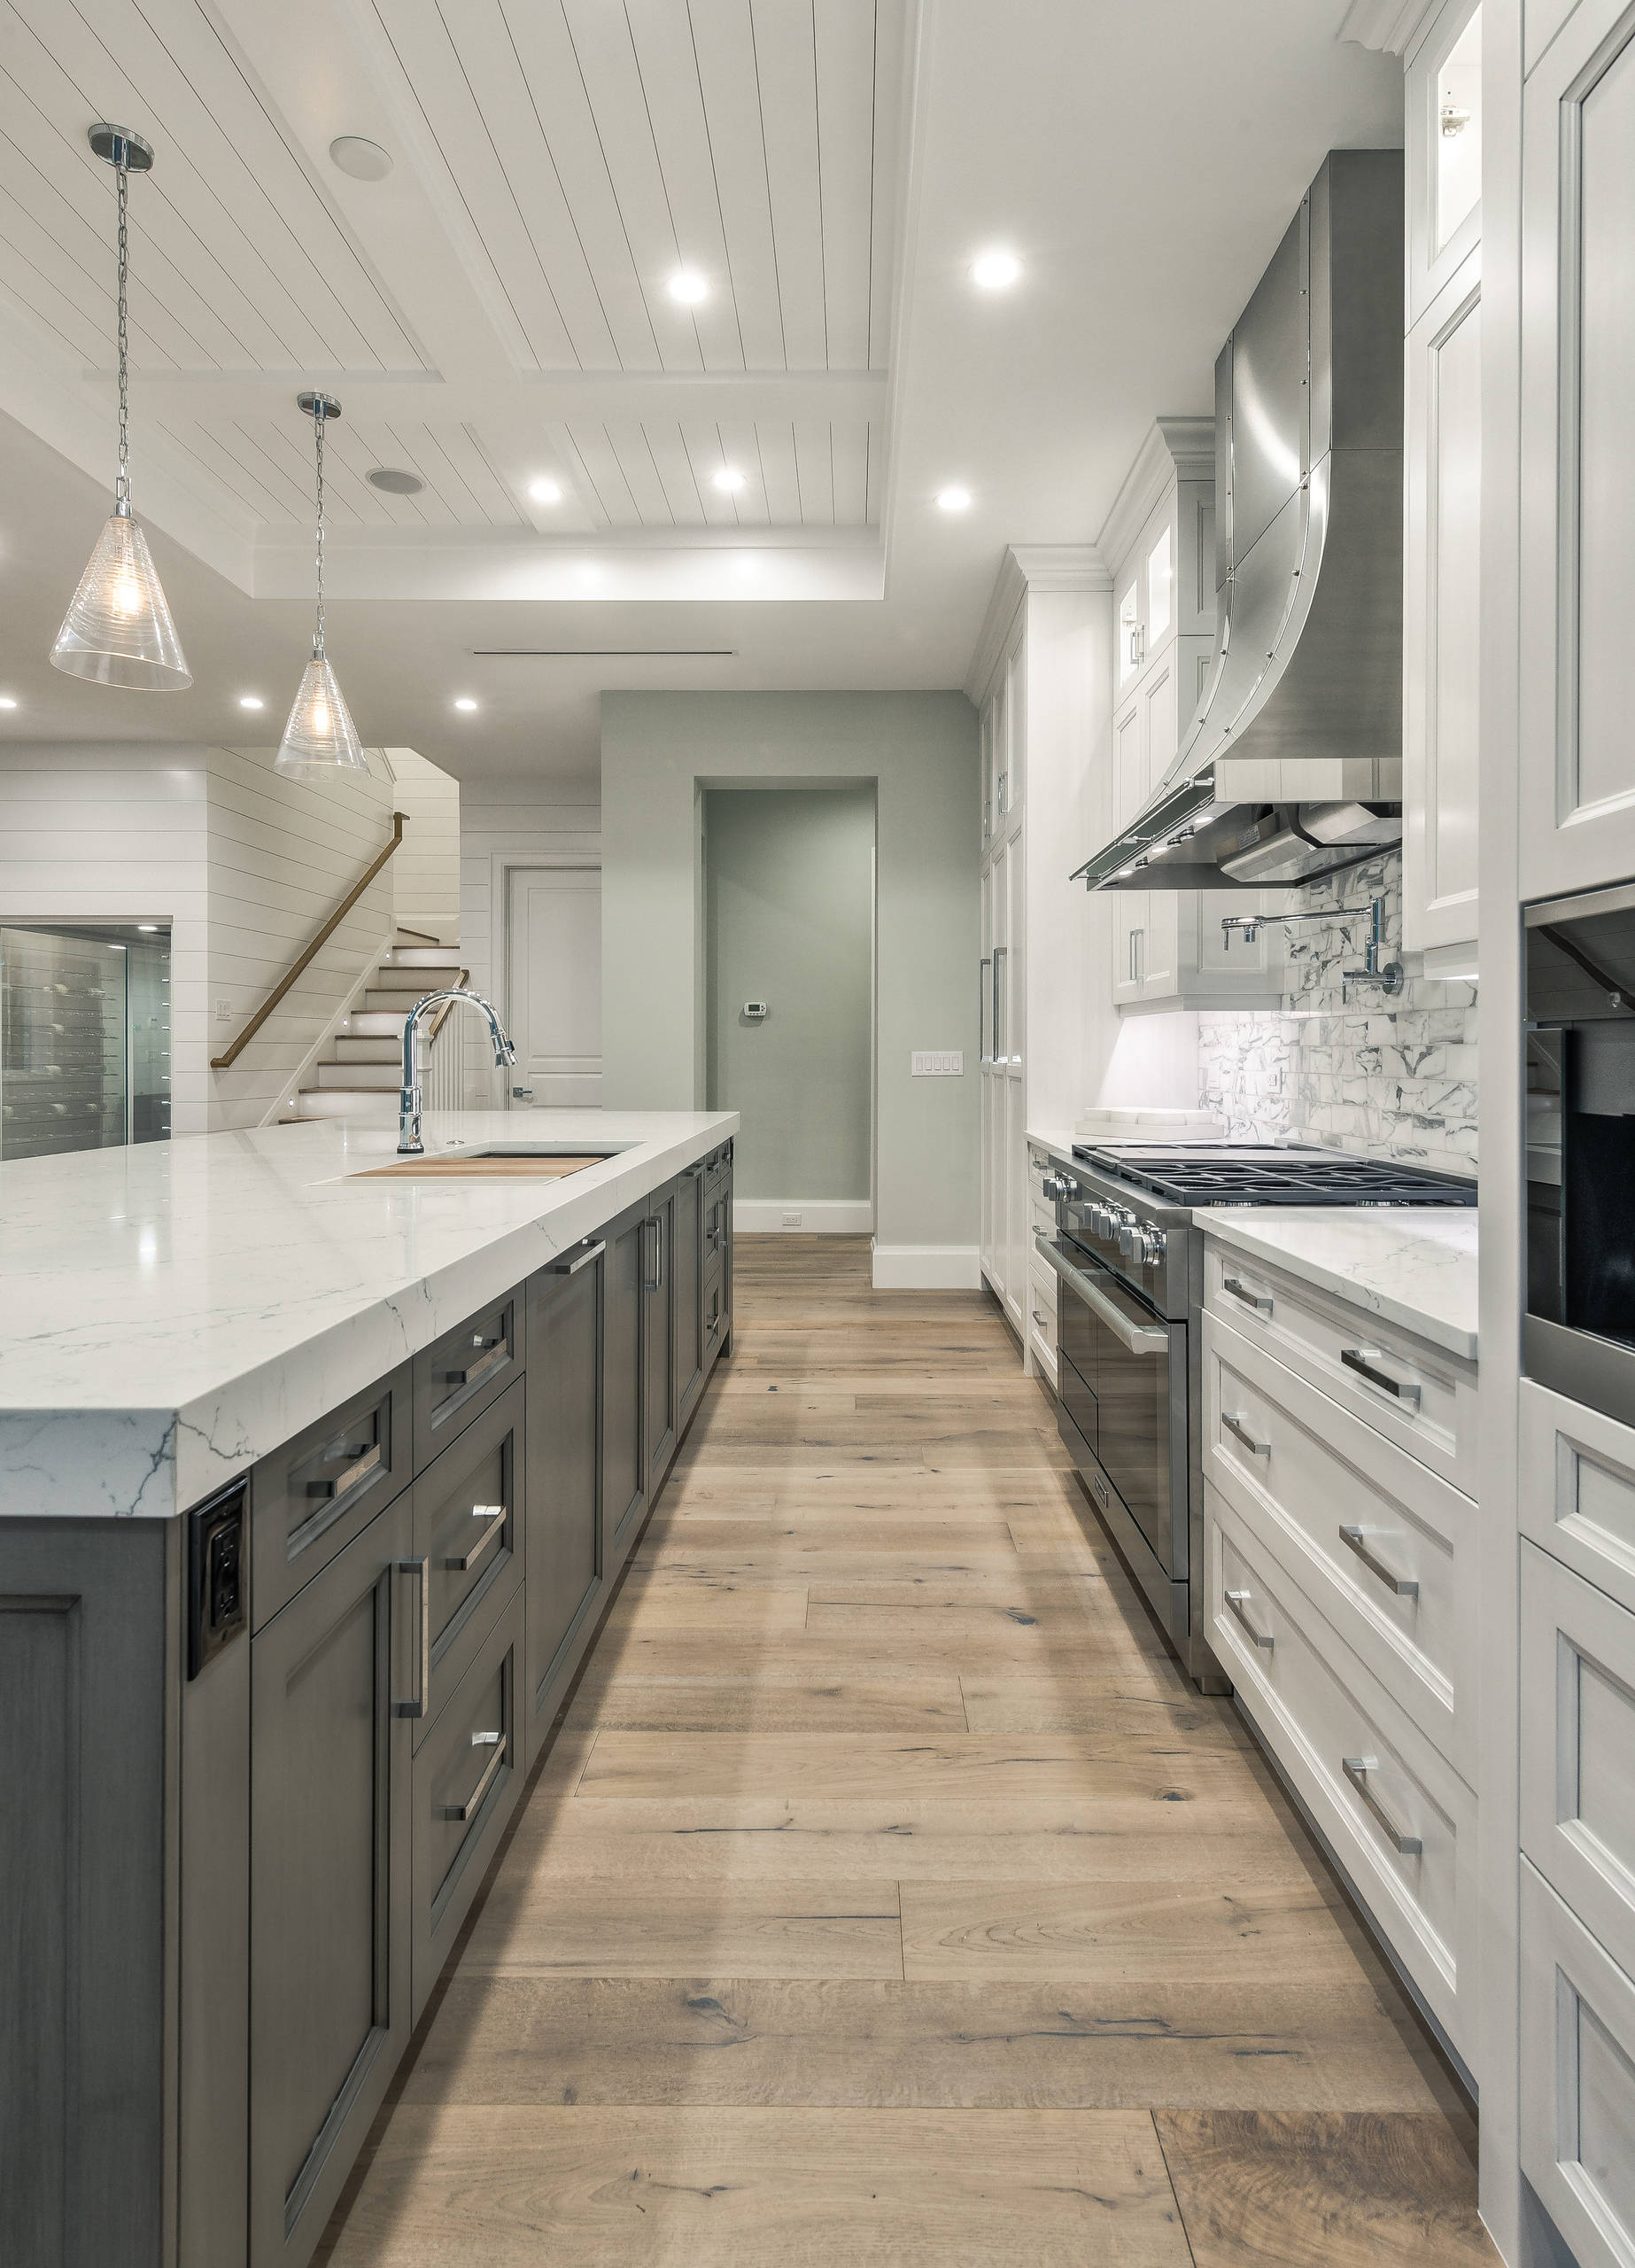 75 Beautiful Modern Kitchen Pictures Ideas February 2021 Houzz